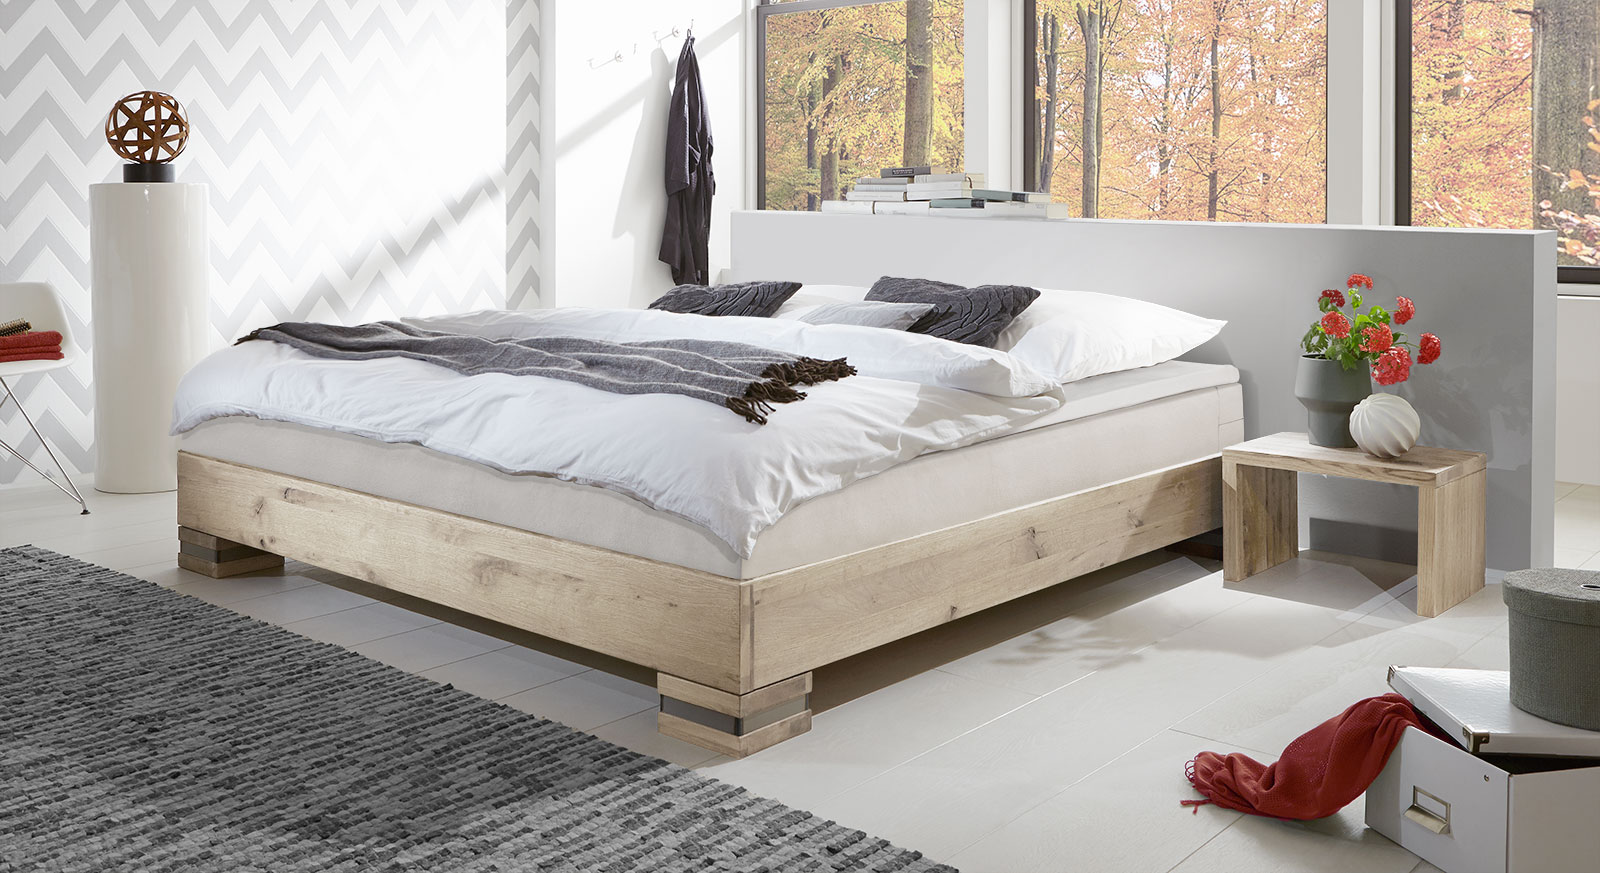 boxspringbett aus wildeiche in futon optik mexiana